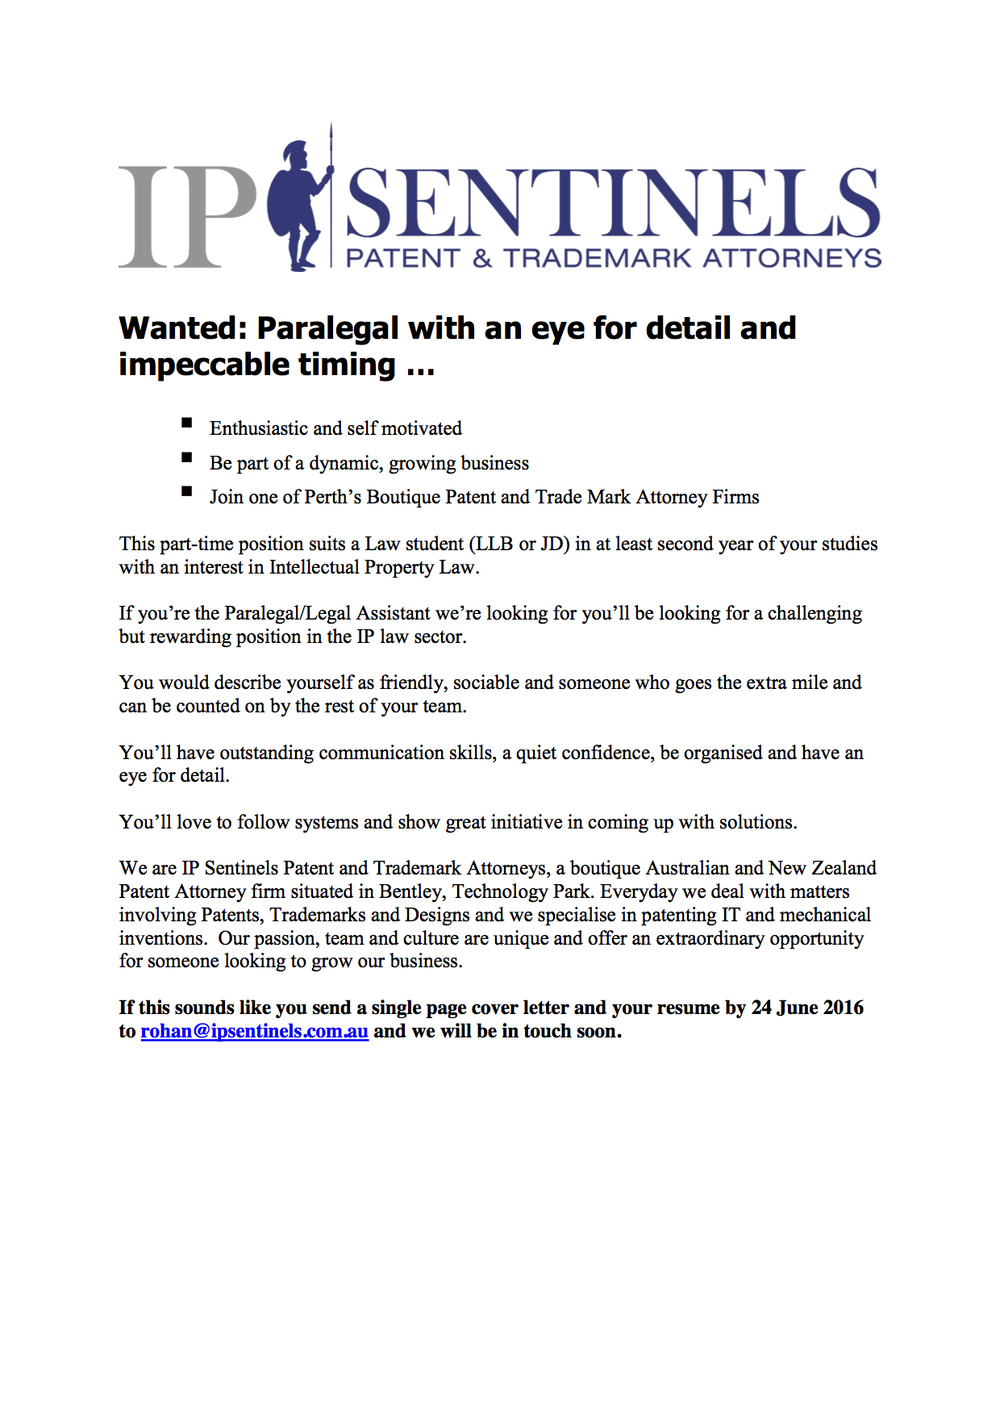 IP Sentinels Patent And Trademark Attorneys Is Seeking A Law Student In At  Least Their Second Year Of Study (JD Or LLB) With An Interest In  Intellectual ...